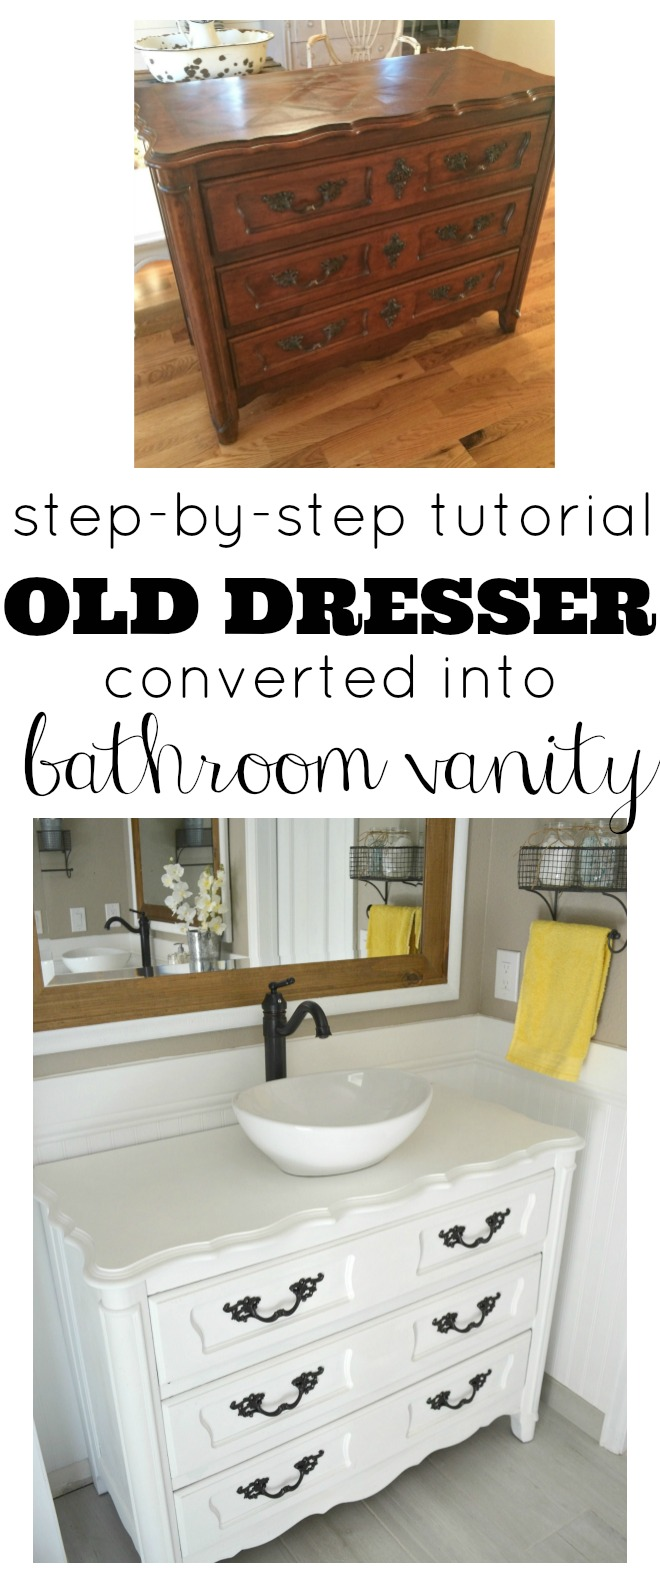 Step By Step Tutorial For Turning An Old Dresser Into A Bathroom Vanity.  Great DIY